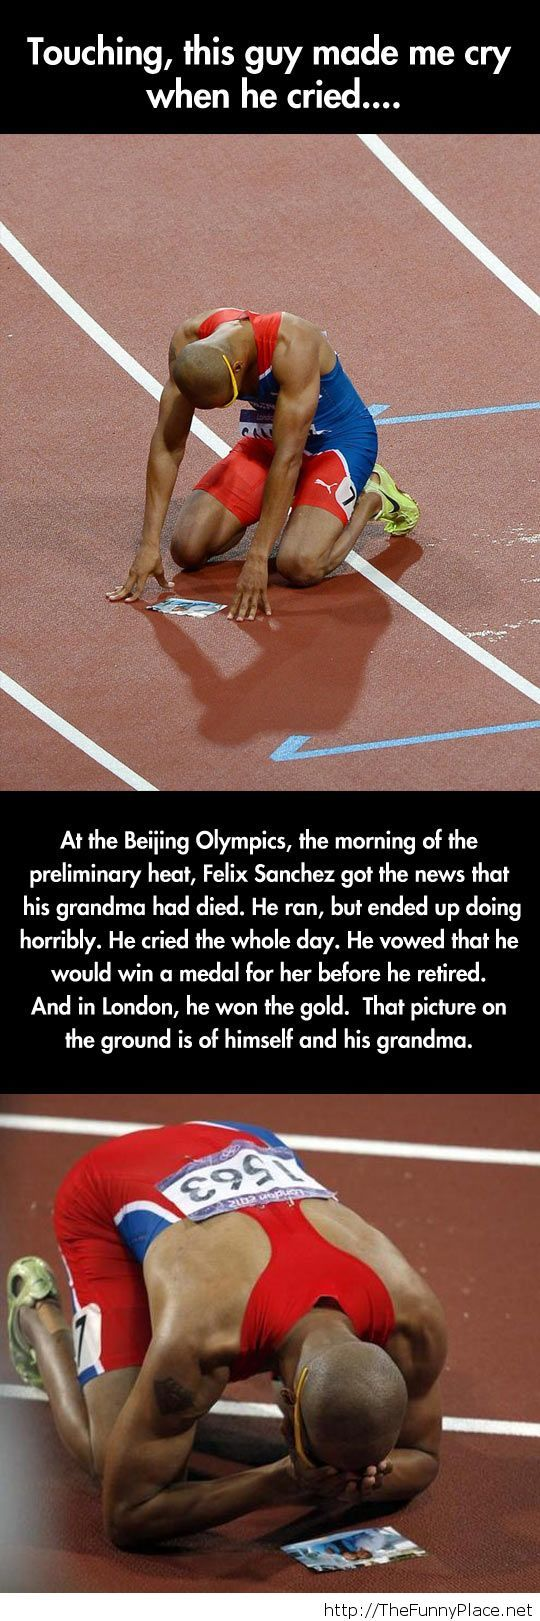 A very touching story...